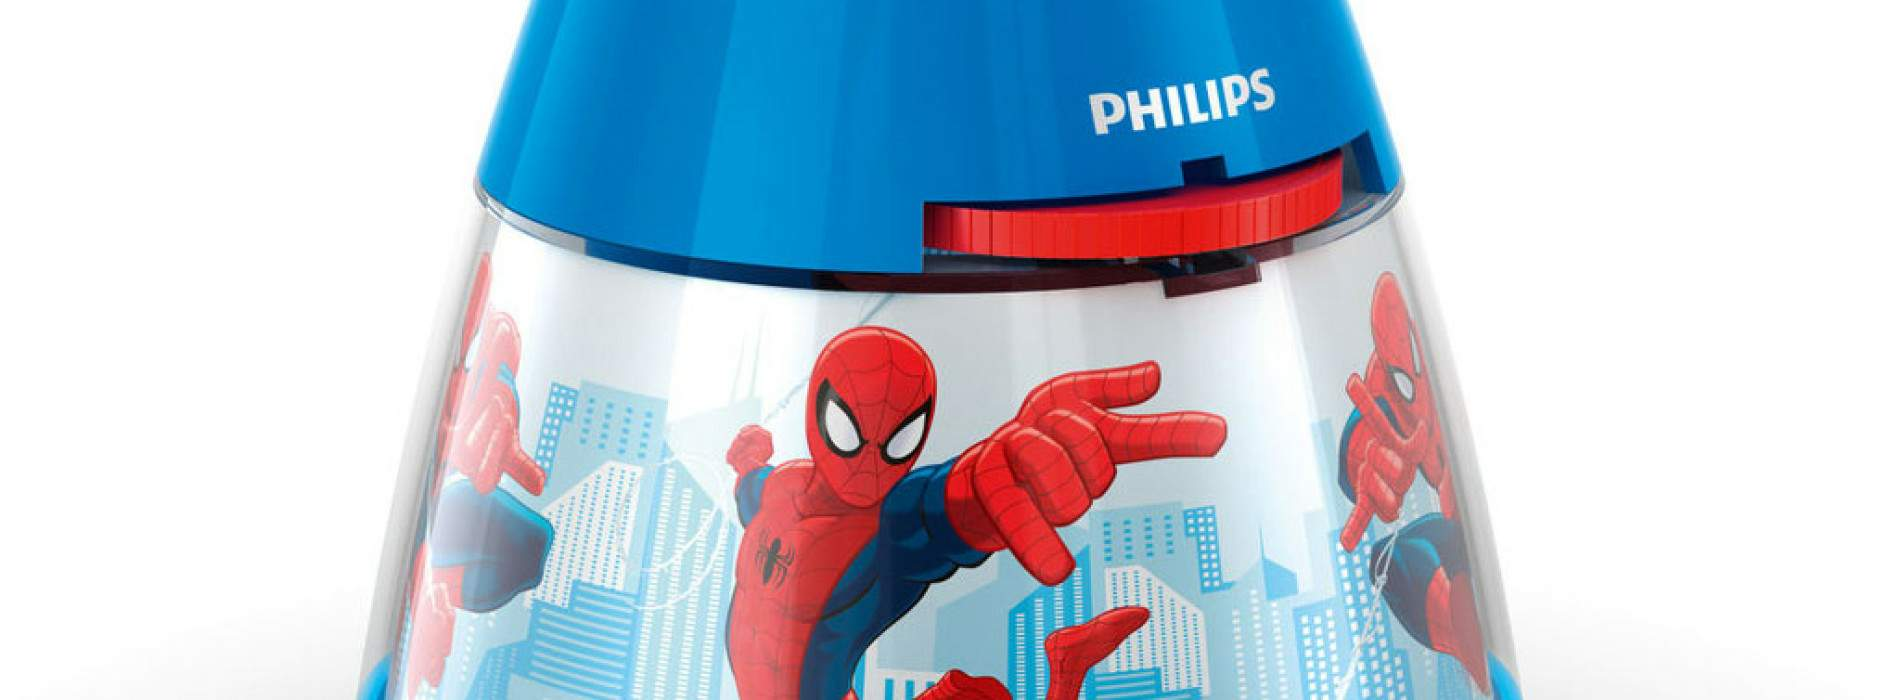 Philips Marvel Spider-Man, ¡y diviértete!